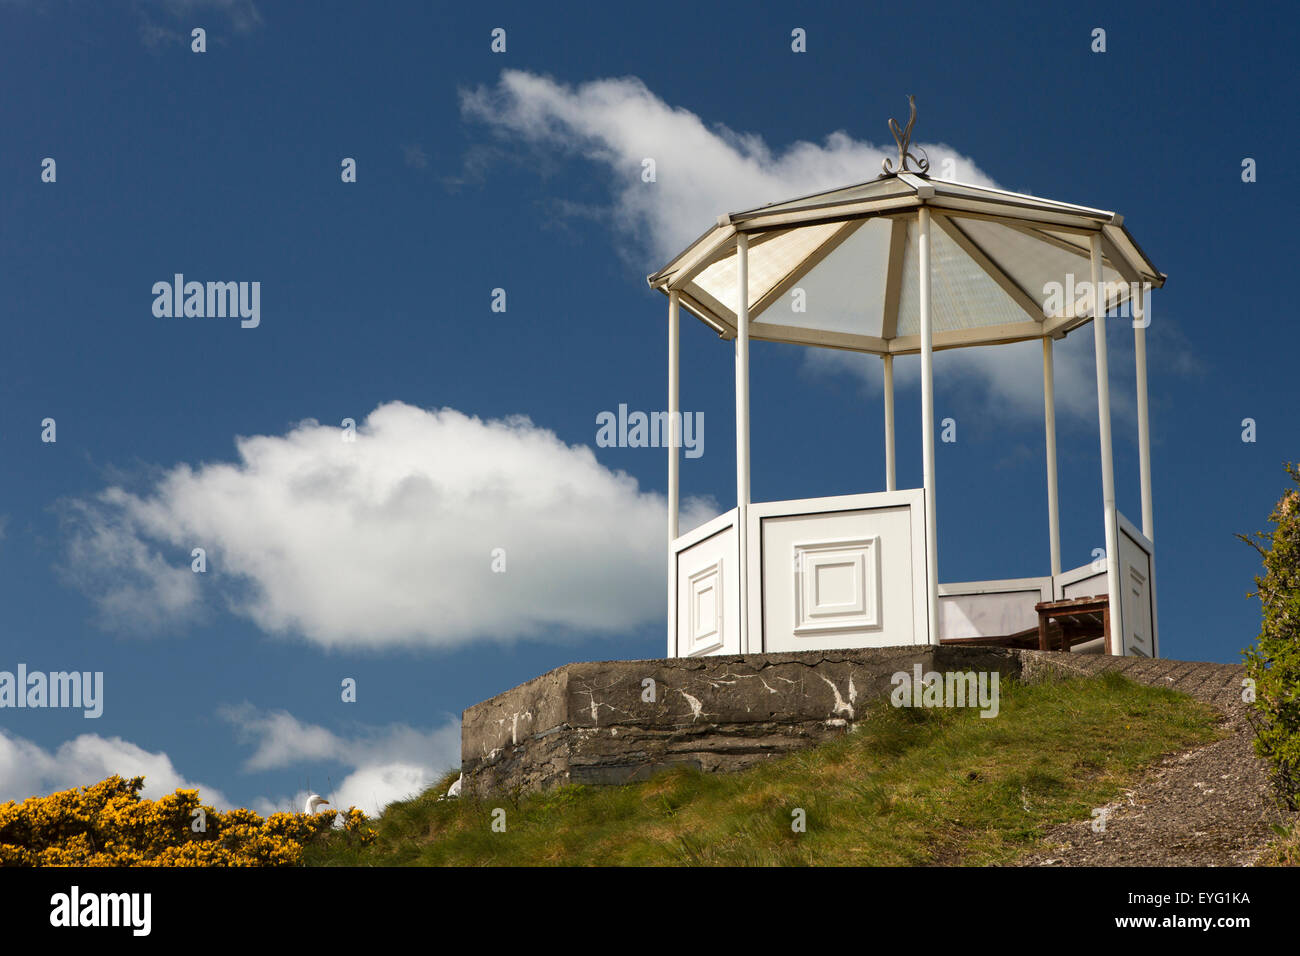 UK, Wales, Gwynedd, Aberdovey, Pen y Bryn bandstand viewpoint above the village - Stock Image